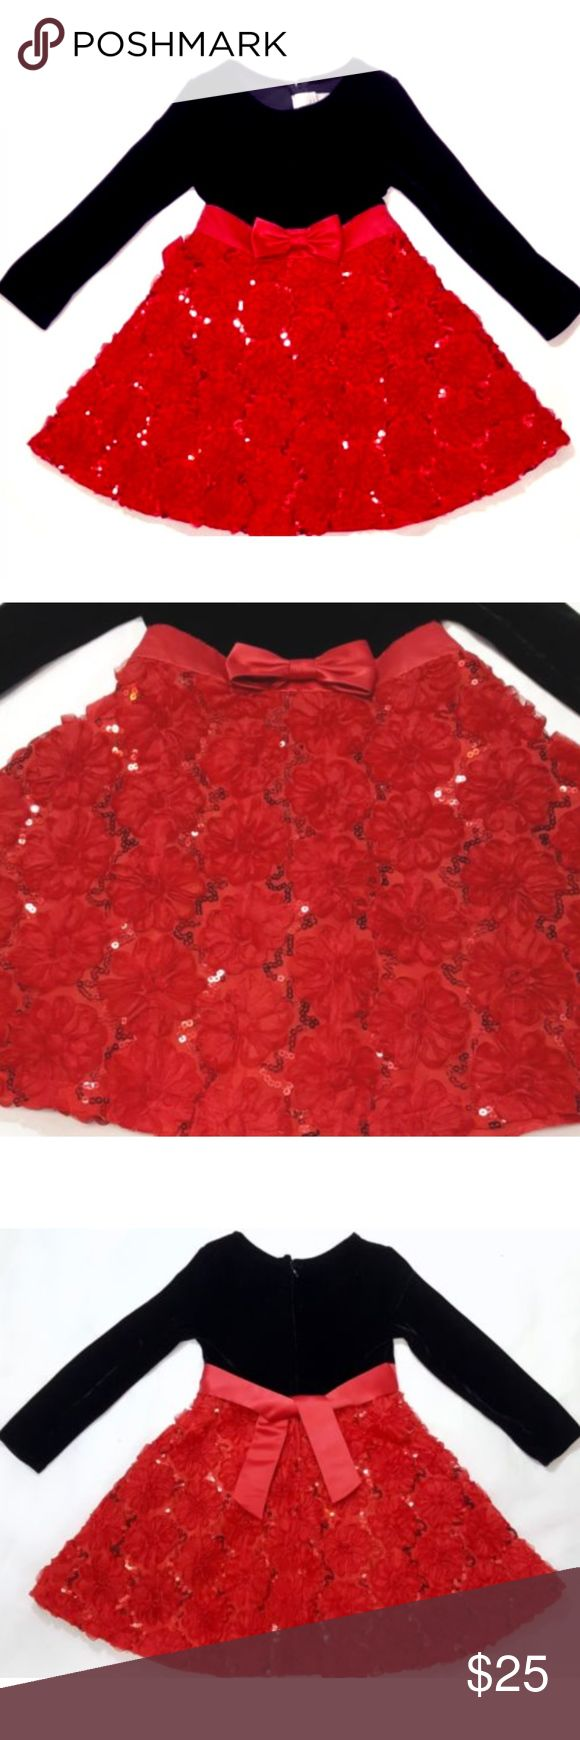 Velvet Sequin Holiday Christmas Party Dress w Bow Iris & Ivy Christmas/holiday party dress  Girls size 5  Black velvet long sleeve bodice Red ribbon band around waist with bow Sash ties in back Red skirt with floral and sequin design Back zipper closure Interior lining and tulle underskirt  Materials Dress/Bodice: 95% Polyester, 5% Spandex Skirt/Band/Bow/Lining/Netting: 100% Polyester iris & ivy Dresses Formal